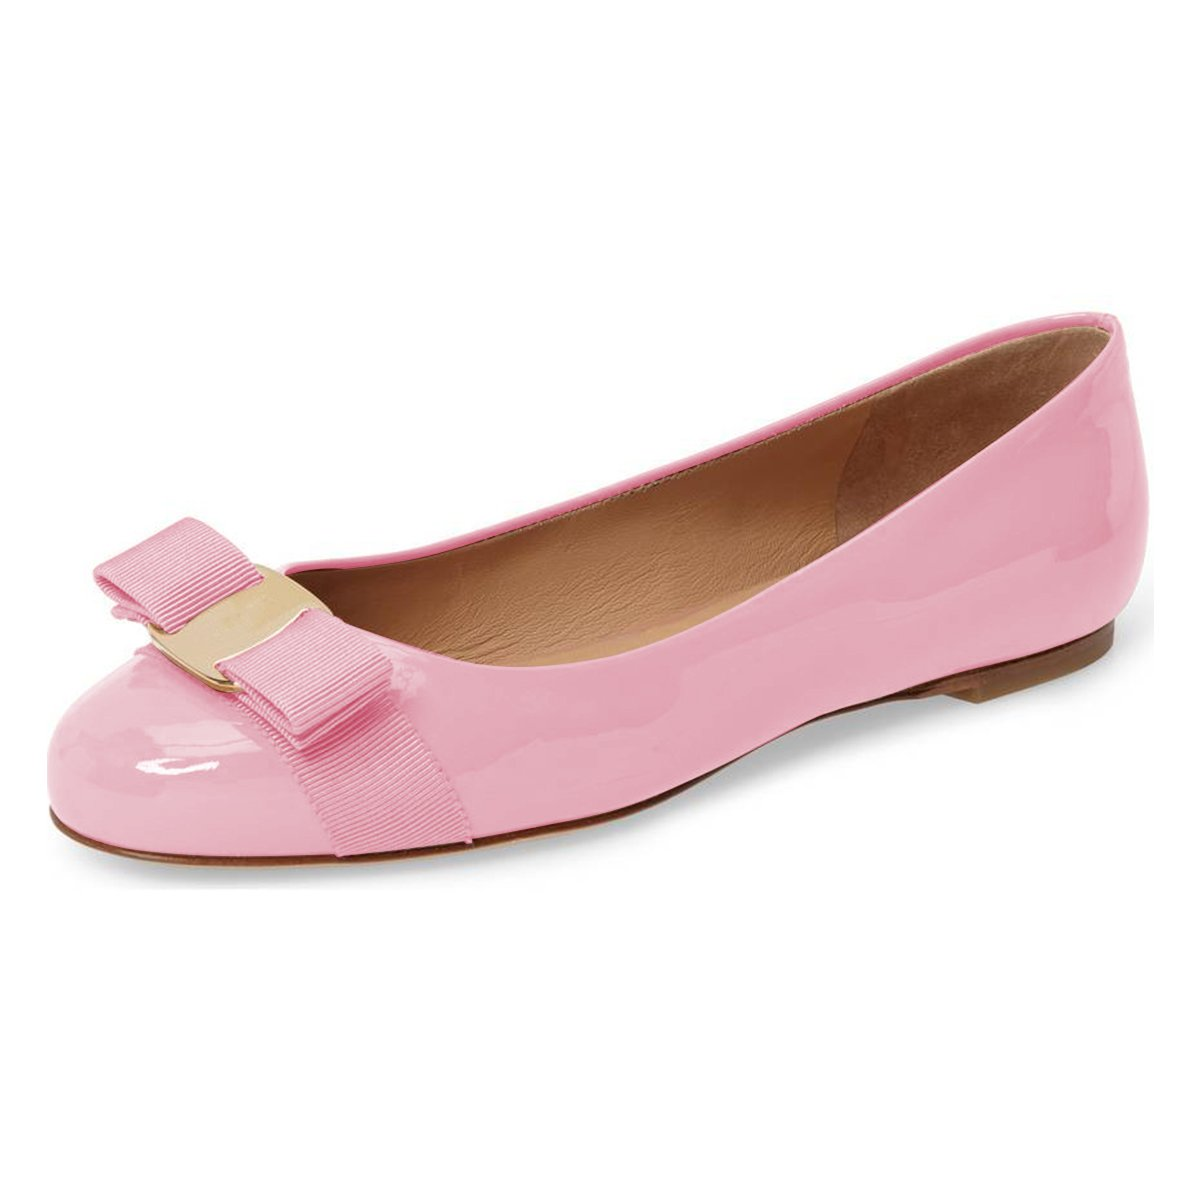 XYD Women Cute Bows Round Toe Ballet Flats Slip On Patent Basic Office Daily Shoes B07CNPZ5Q9 6 B(M) US|Pink